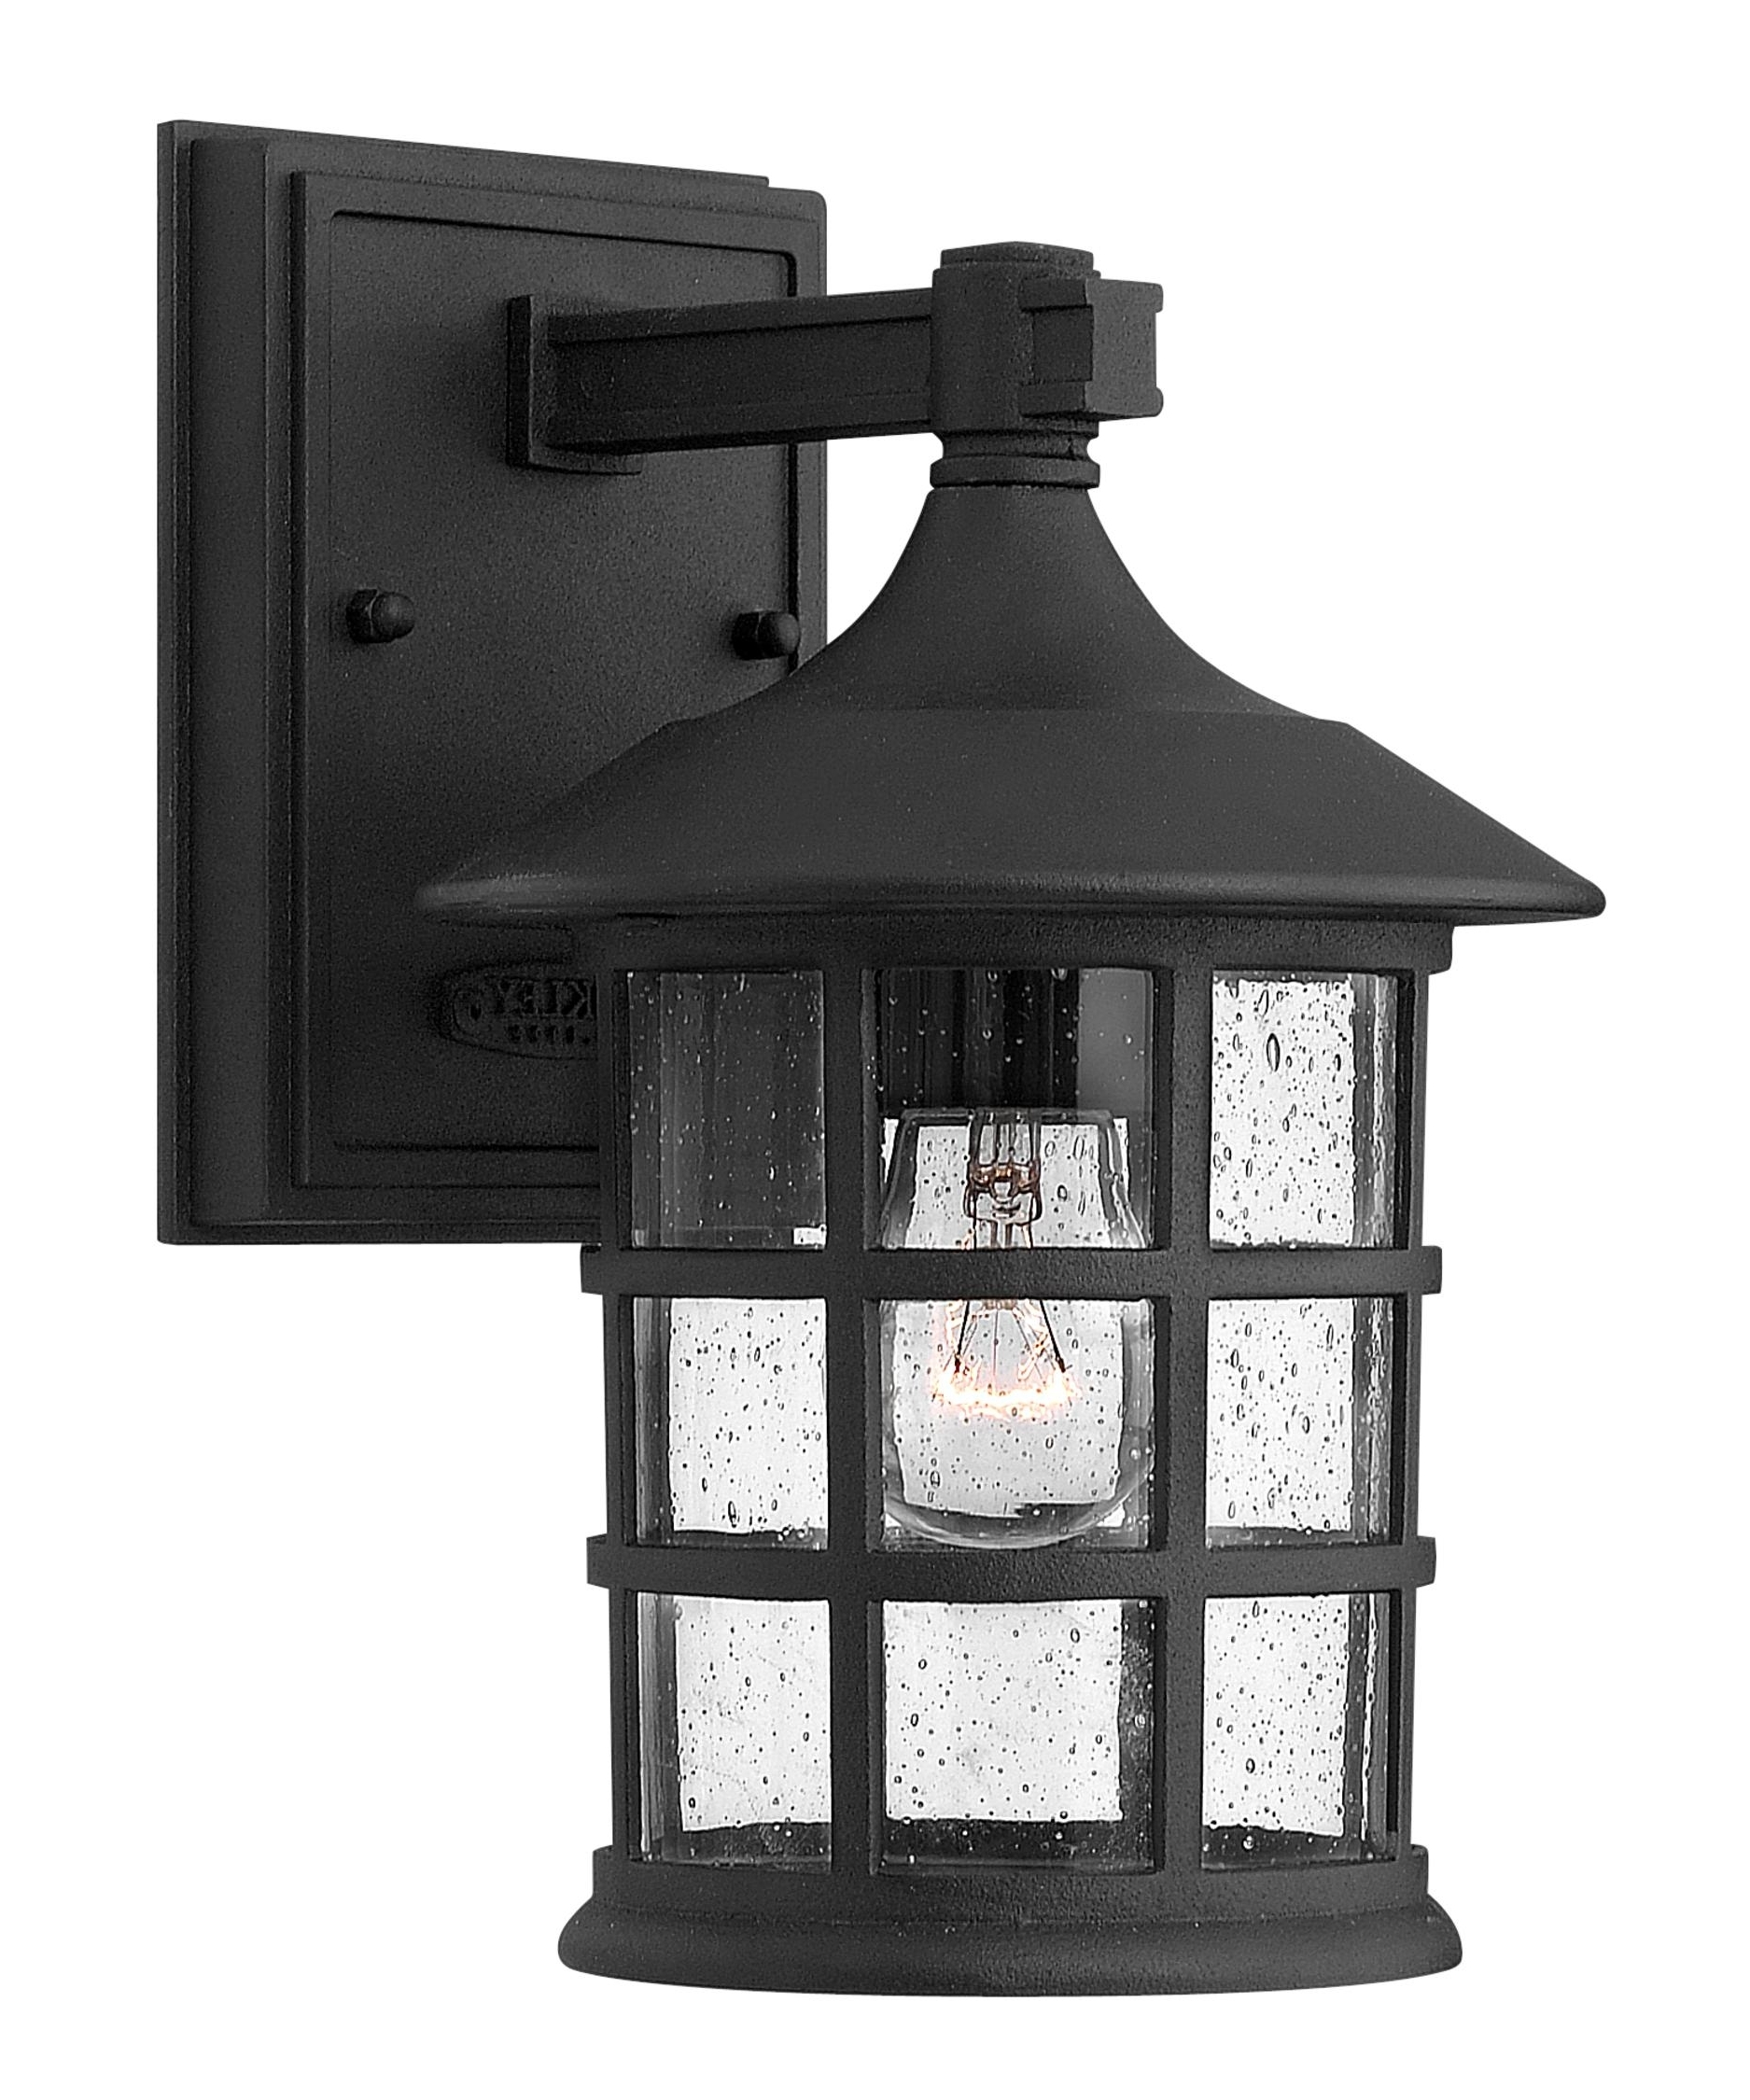 Mini Wall Mount Hinkley Lighting Pertaining To Latest Hinkley Lighting 1800 Freeport 6 Inch Wide 1 Light Outdoor Wall (View 17 of 20)